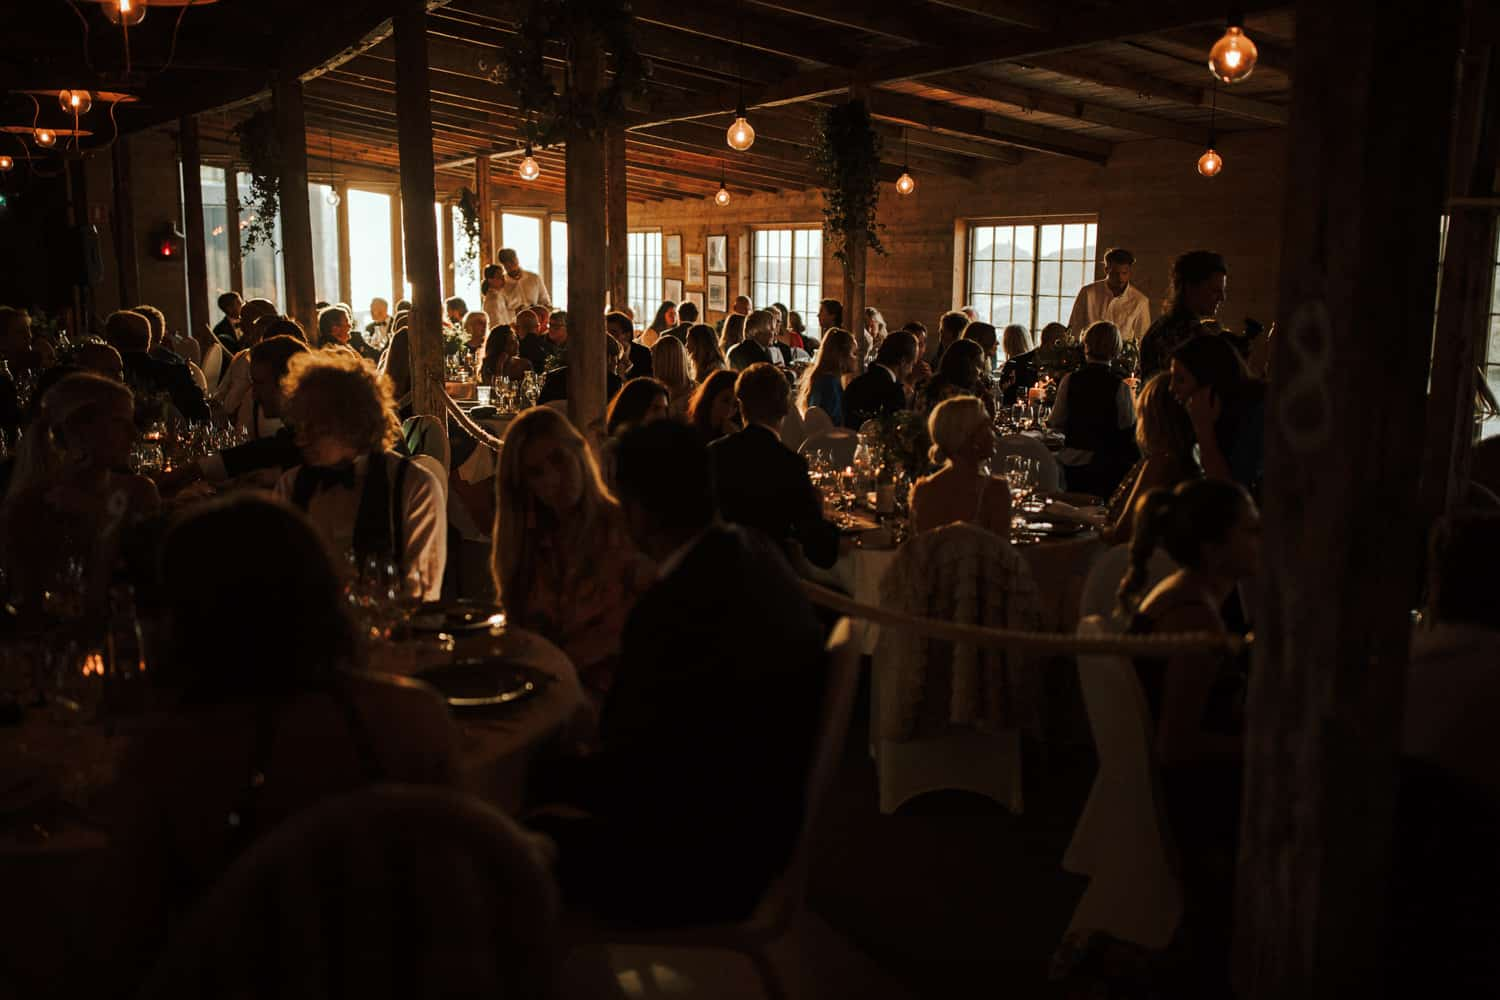 Wedding guests are sitting at tables in a rustic room.